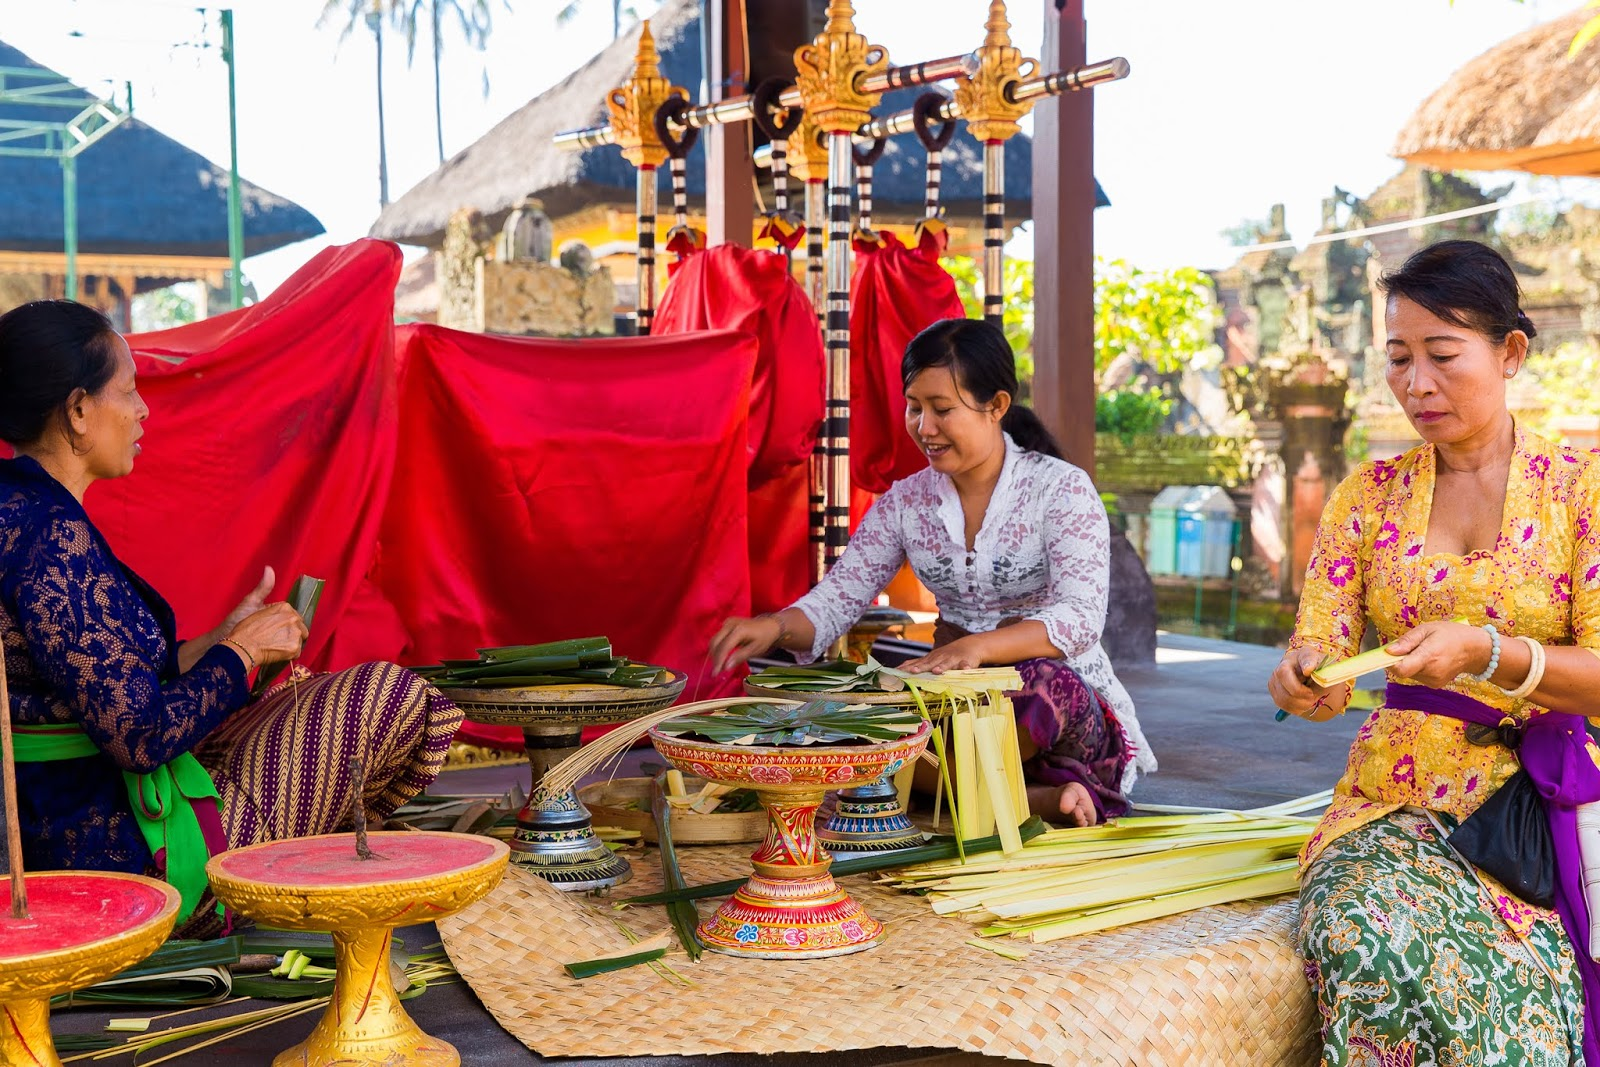 Balinese women make decorations for the temple